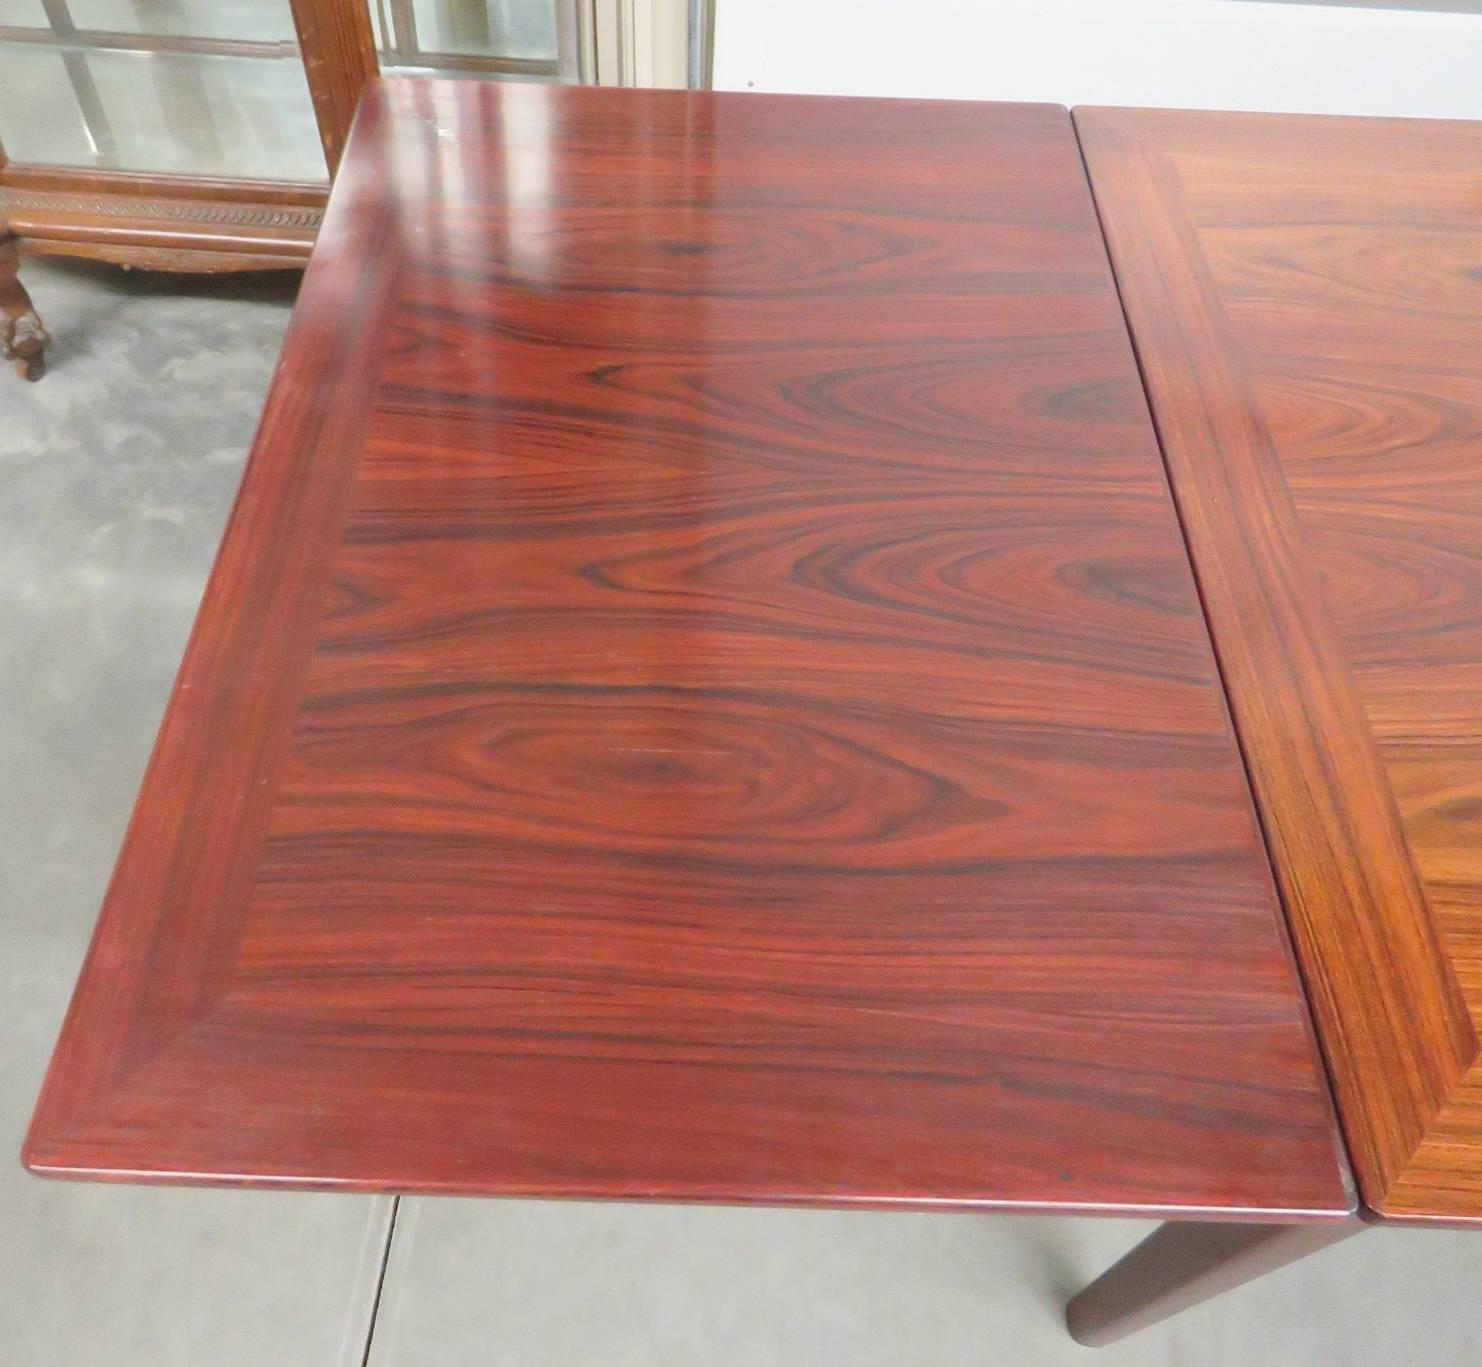 skovby rosewood dining chairs chicco hook on chair 360 mobelfabrik danish modern table for